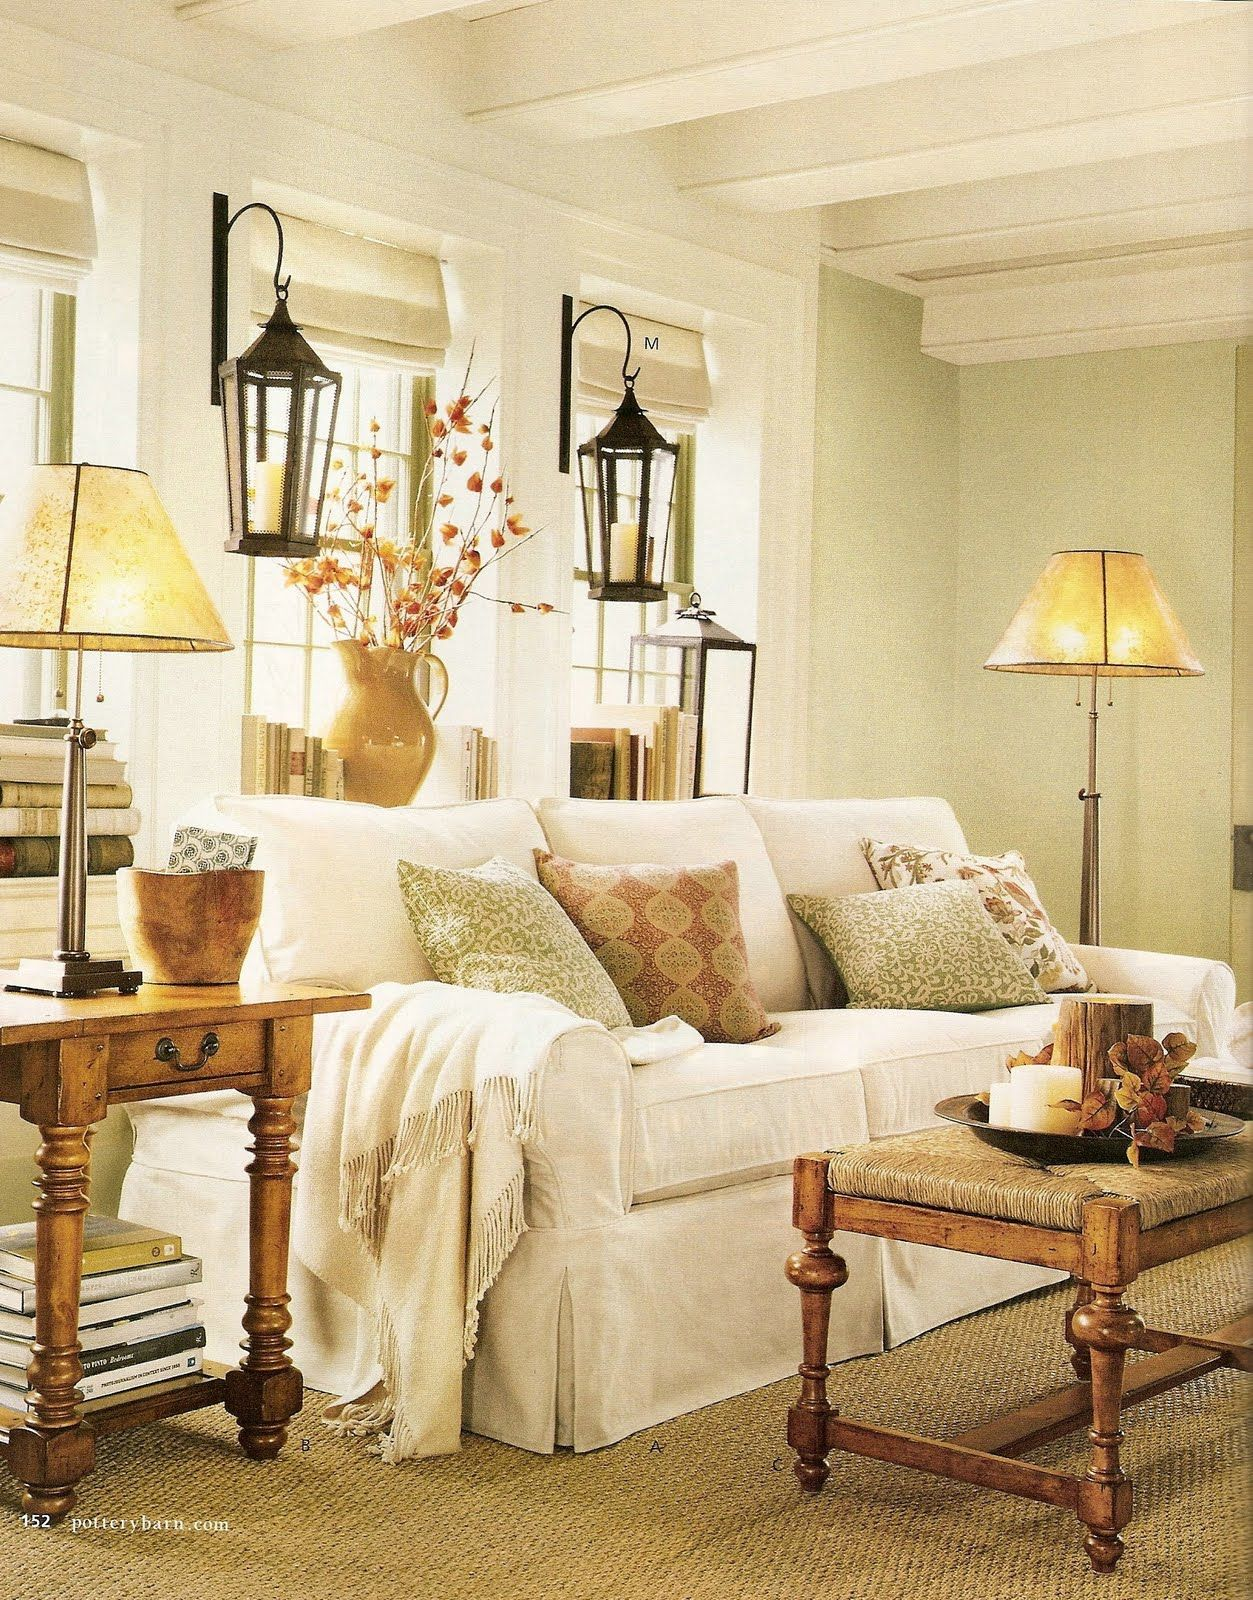 Little Inspirations: Warm & Cozy Room | Cozy room, Home ...